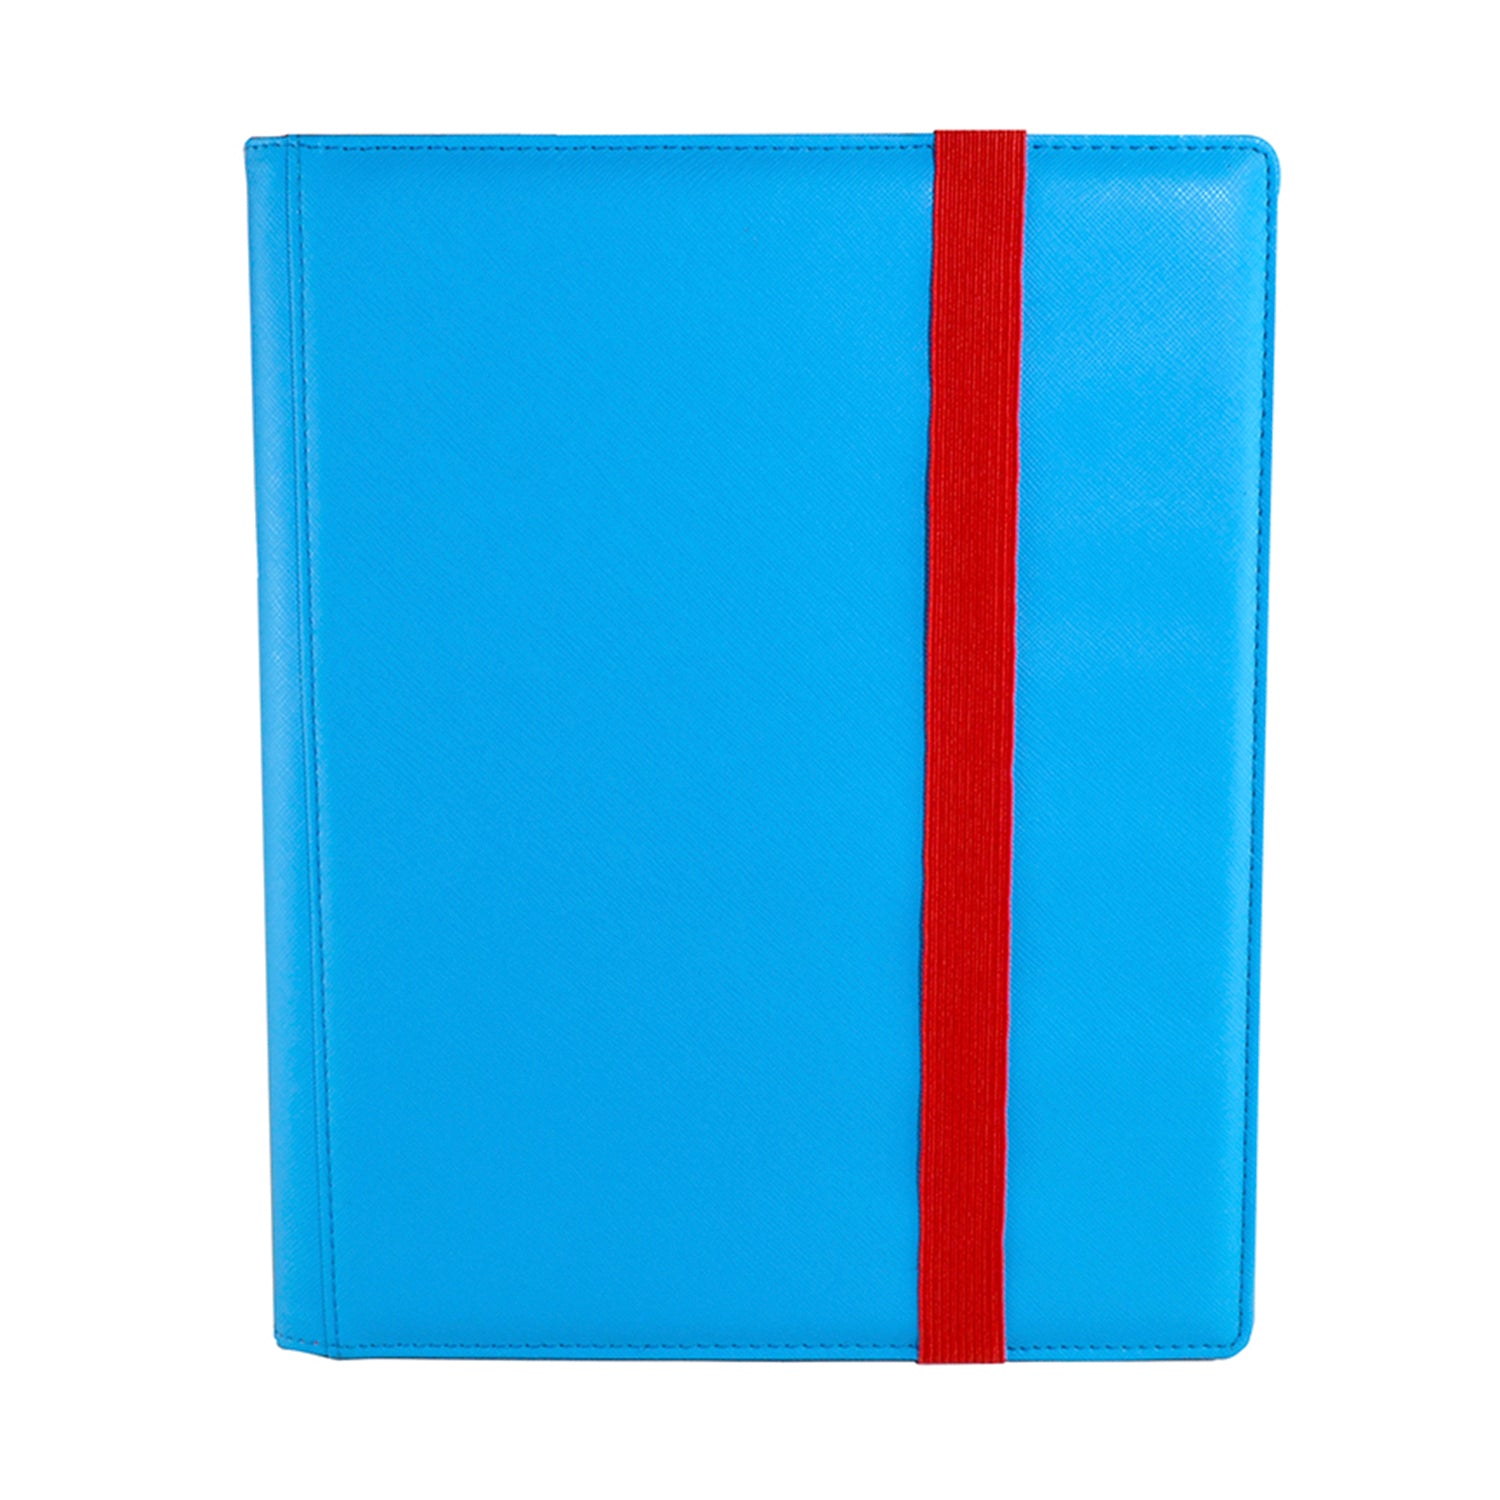 Dex Protection: The Dex Binder 9 - Blue